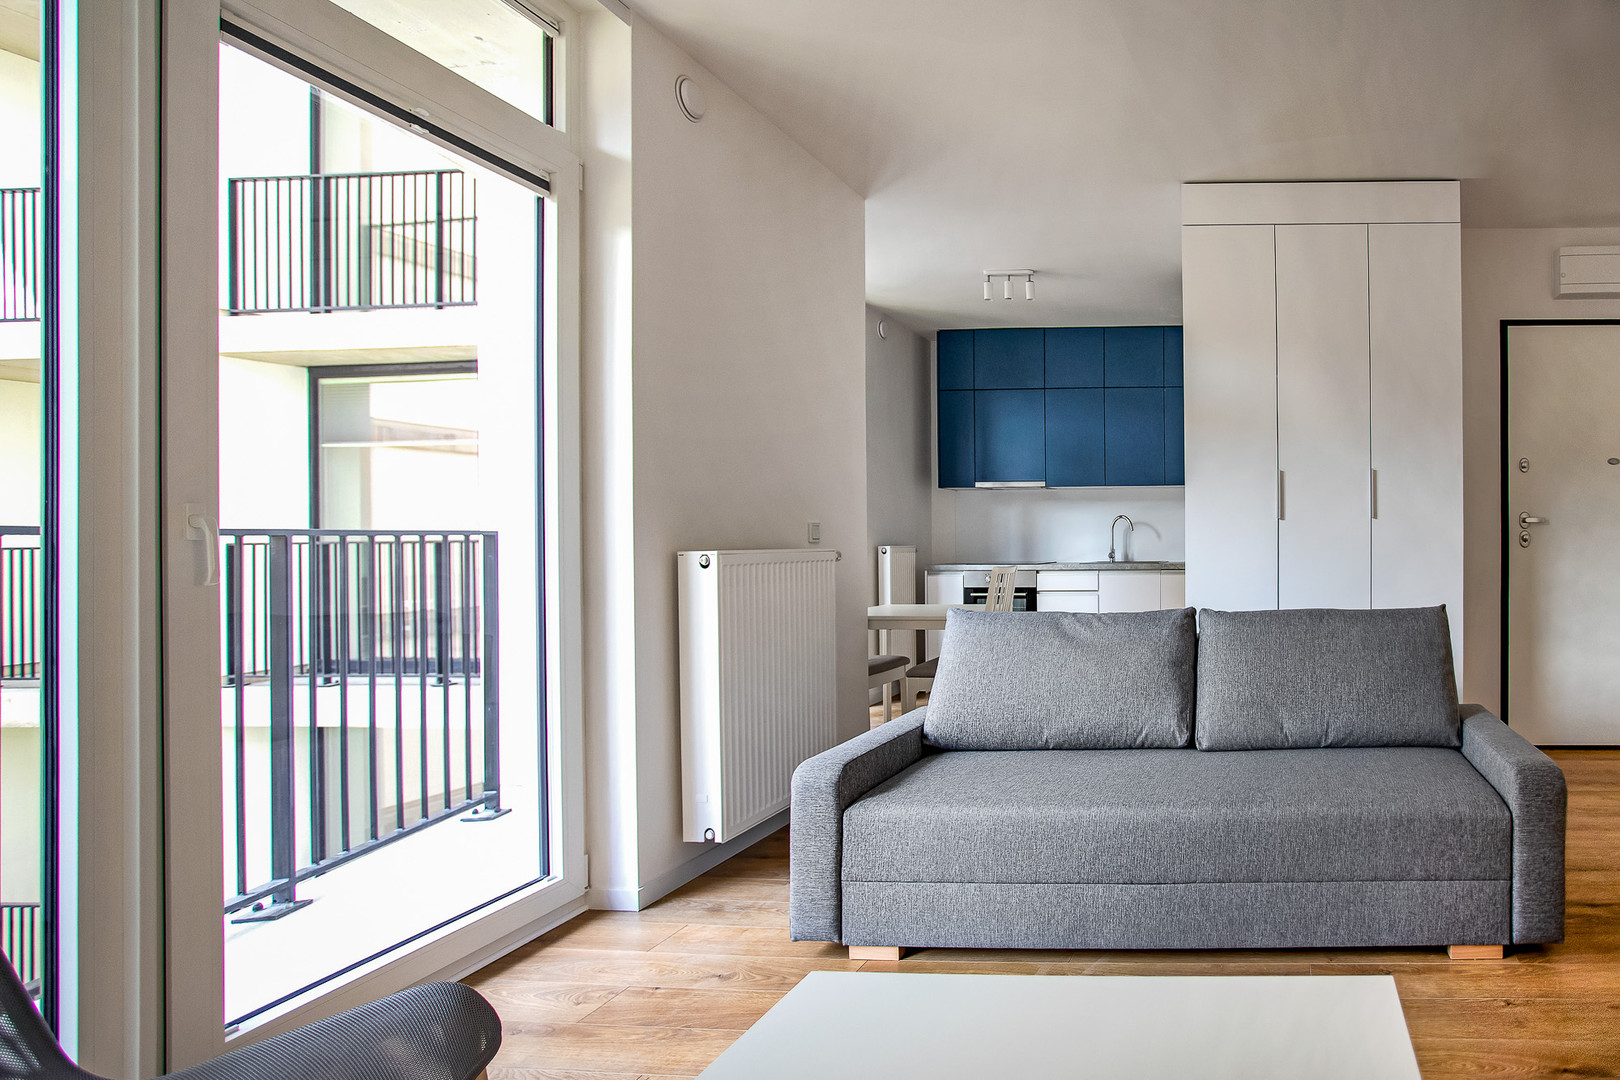 Wrasaw-Wola-Office-Apartments_3.jpg